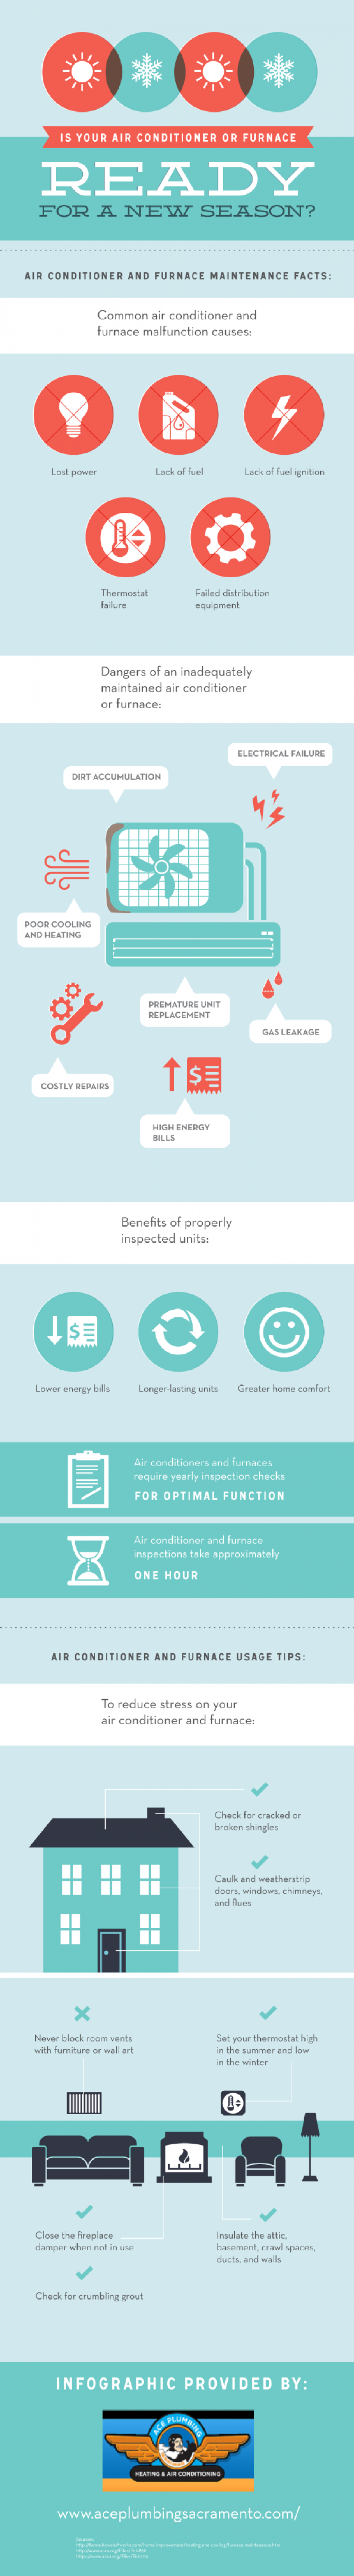 Is Your Air Conditioner or Furnace Ready for a New Season?  Infographic